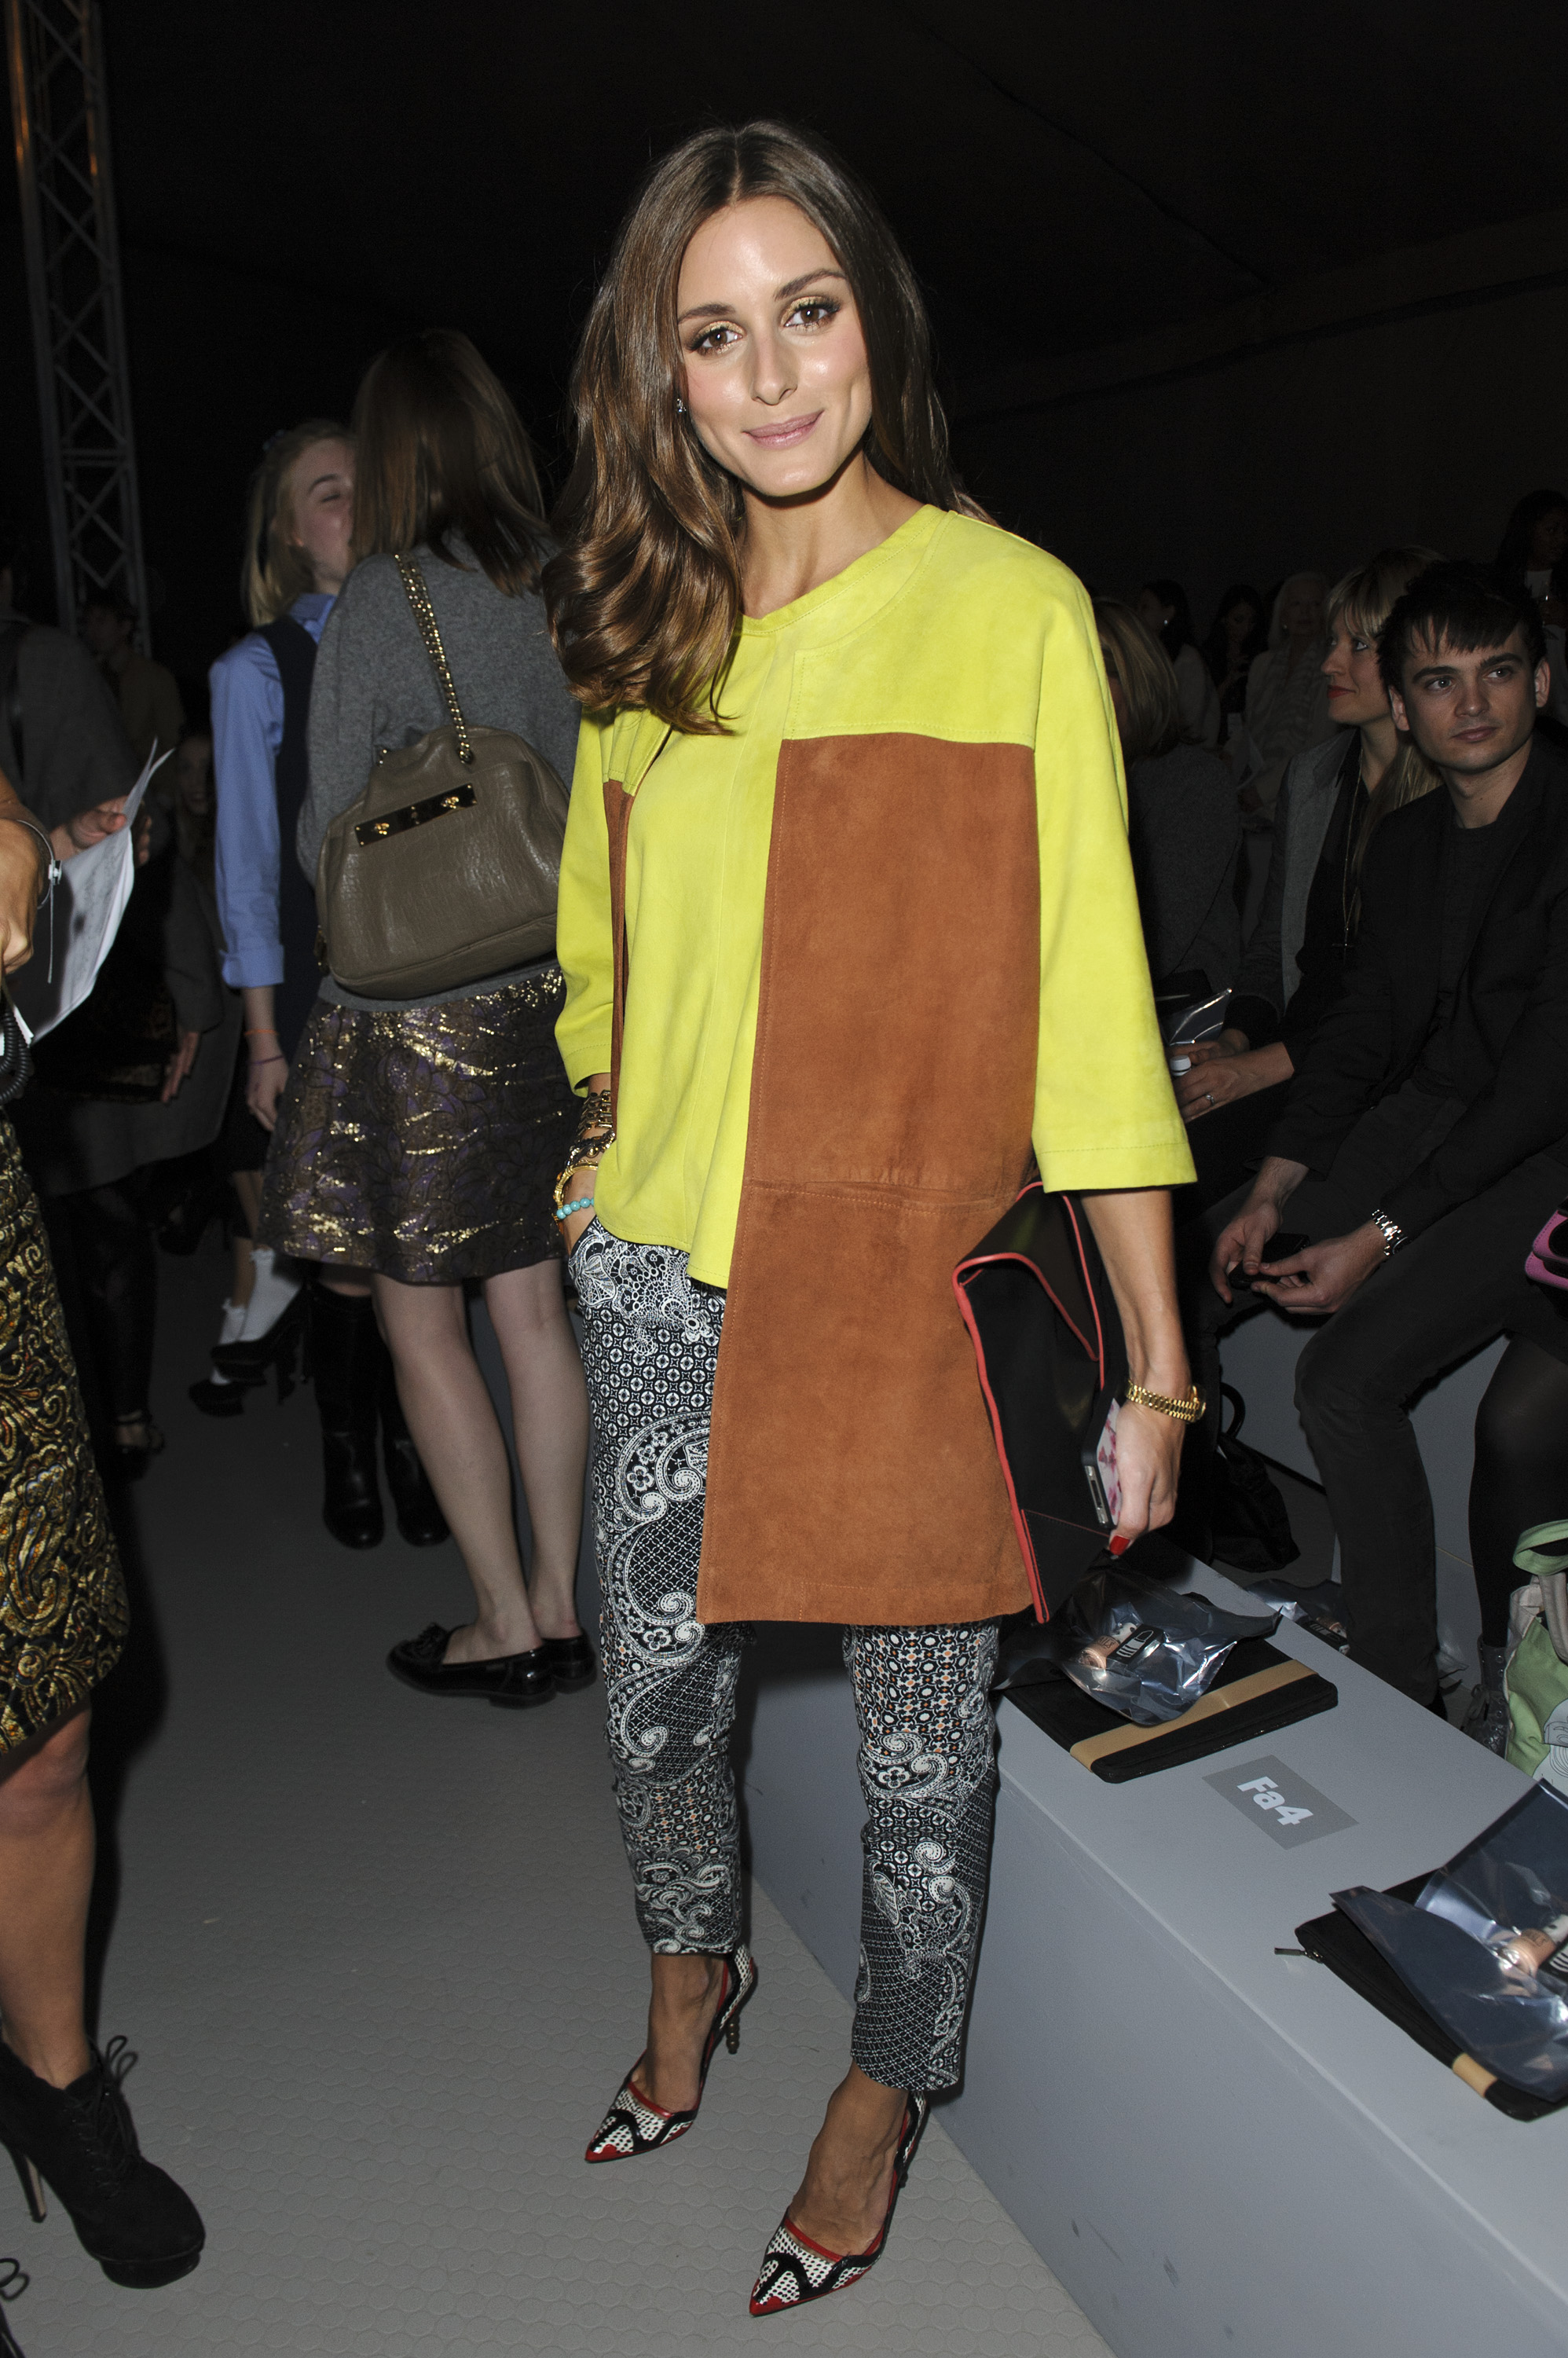 Olivia Palermo turned up in the front row of Unique at London Fashion Week in a unique take on neon, print, and suede.